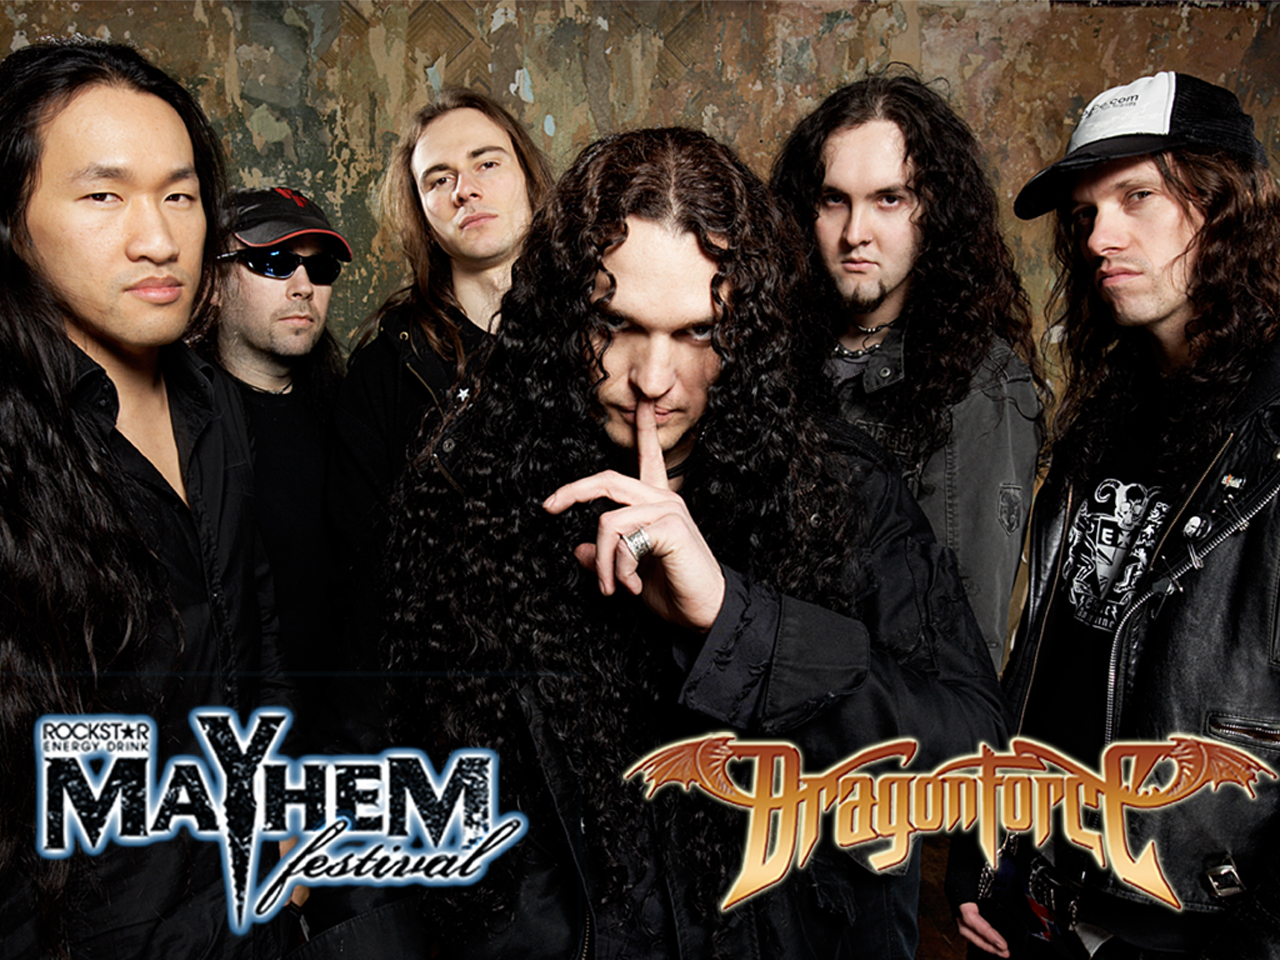 Dragonforce - Through The Fire And Flames - Taringa!